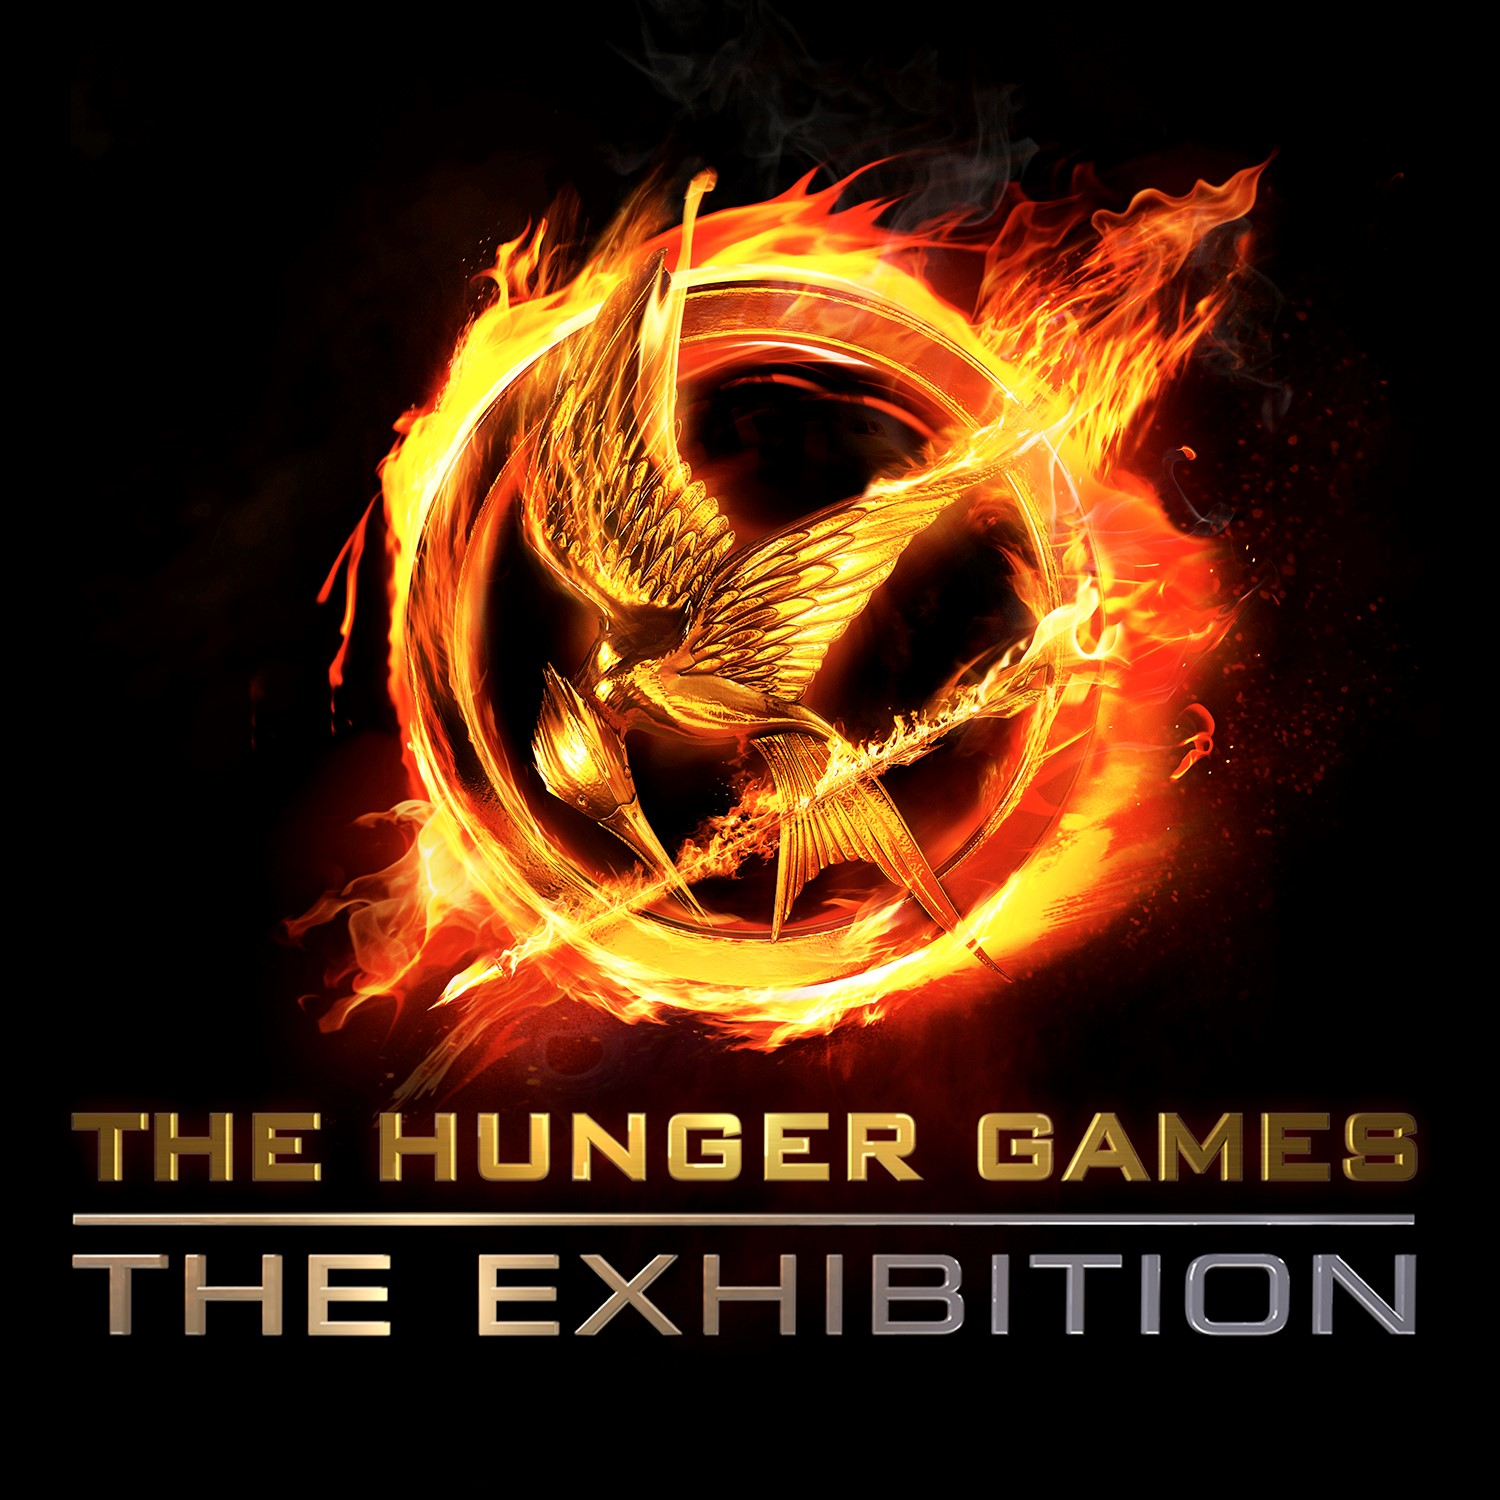 The Hunger Games The Exhibition To Open In Australia